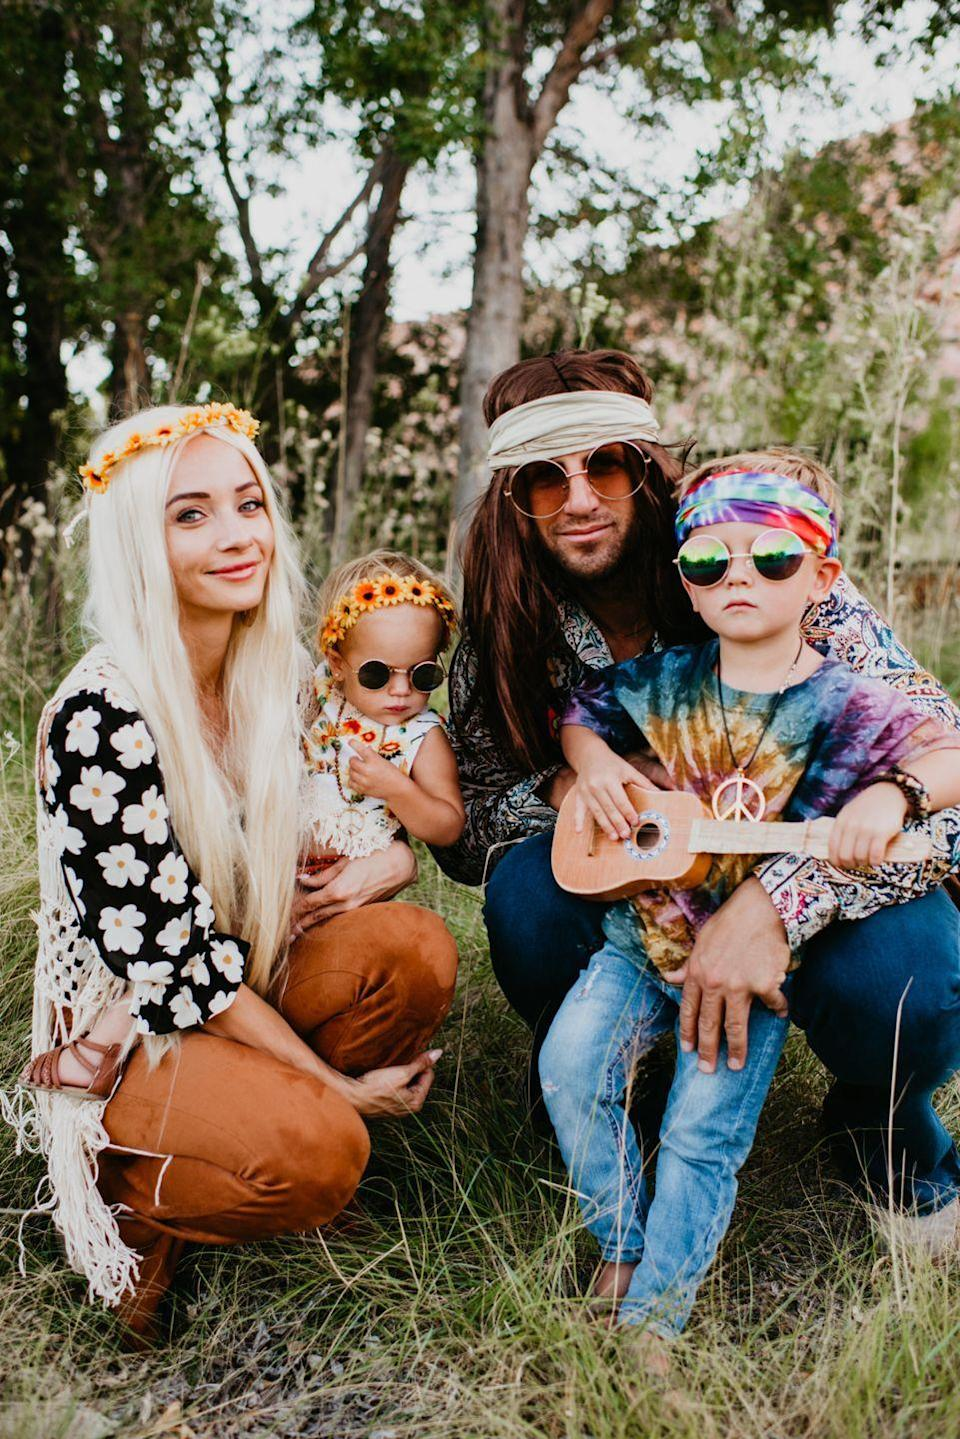 """<p>If you're feeling nostalgic this Halloween, why not embrace a 1970s vibe with this hippie-inspired ensemble? Between the bell bottoms, the flower crowns and plenty of tie dye, you'll be the grooviest family on the block!</p><p><strong>Get the tutorial at <a href=""""https://outfitsandoutings.com/diy-hippie-costume-ideas-for-halloween/"""" rel=""""nofollow noopener"""" target=""""_blank"""" data-ylk=""""slk:Outfits & Outings"""" class=""""link rapid-noclick-resp"""">Outfits & Outings</a>.</strong></p><p><a class=""""link rapid-noclick-resp"""" href=""""https://www.amazon.com/DDazzling-Eucalyptus-Headband-Headpiece-Sunflower/dp/B07QJWWDYV/ref=sr_1_14?dchild=1&keywords=flower+crown&qid=1596030492&sr=8-14&tag=syn-yahoo-20&ascsubtag=%5Bartid%7C10050.g.29074815%5Bsrc%7Cyahoo-us"""" rel=""""nofollow noopener"""" target=""""_blank"""" data-ylk=""""slk:SHOP FLOWER CROWNS"""">SHOP FLOWER CROWNS</a></p>"""